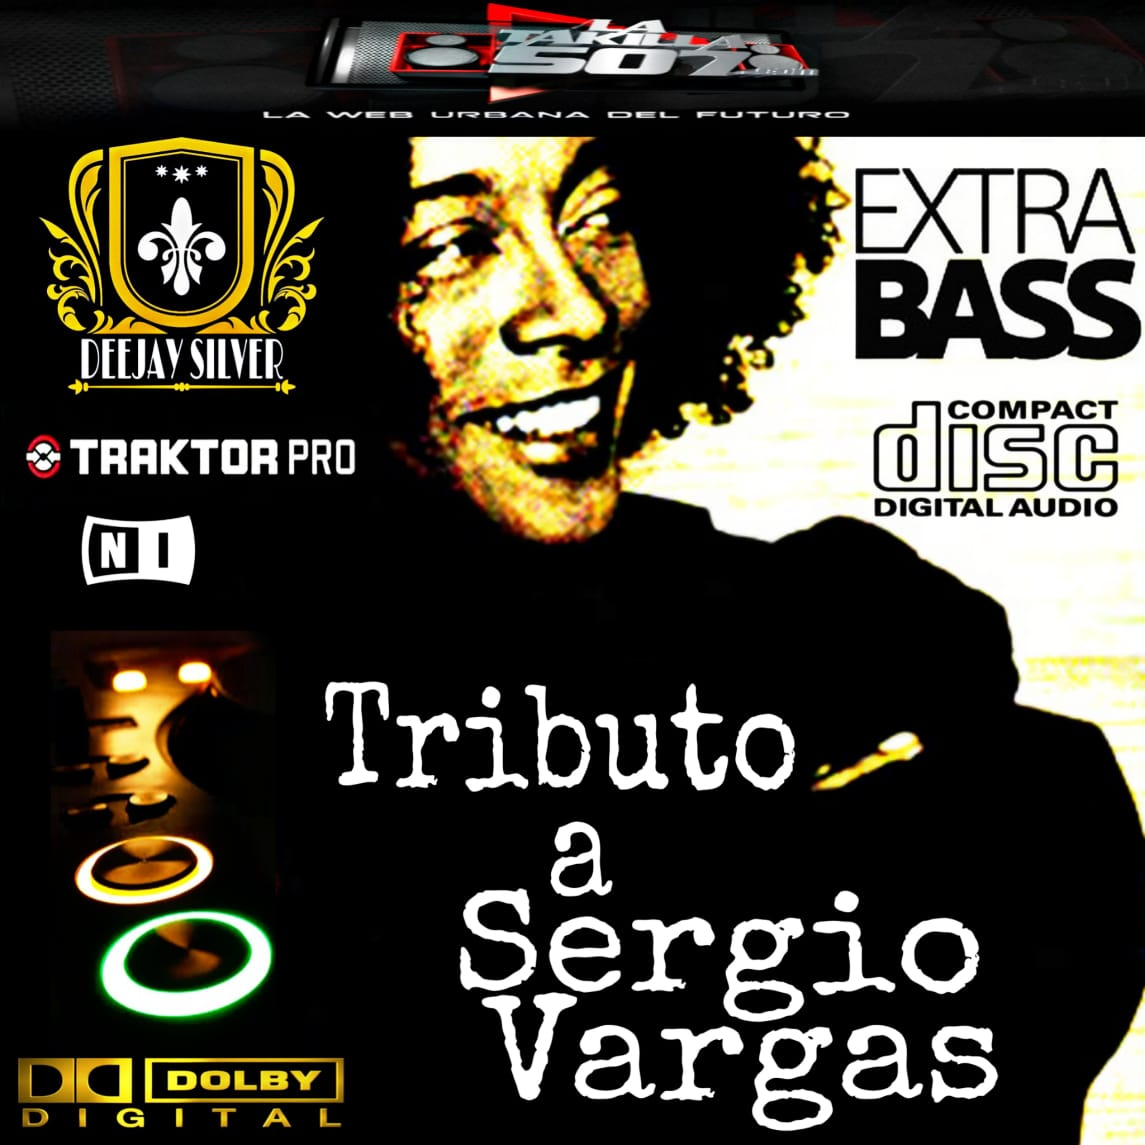 Merengue Mix -Dj Silver507 (Tributo a Sergio Vargas).mp3